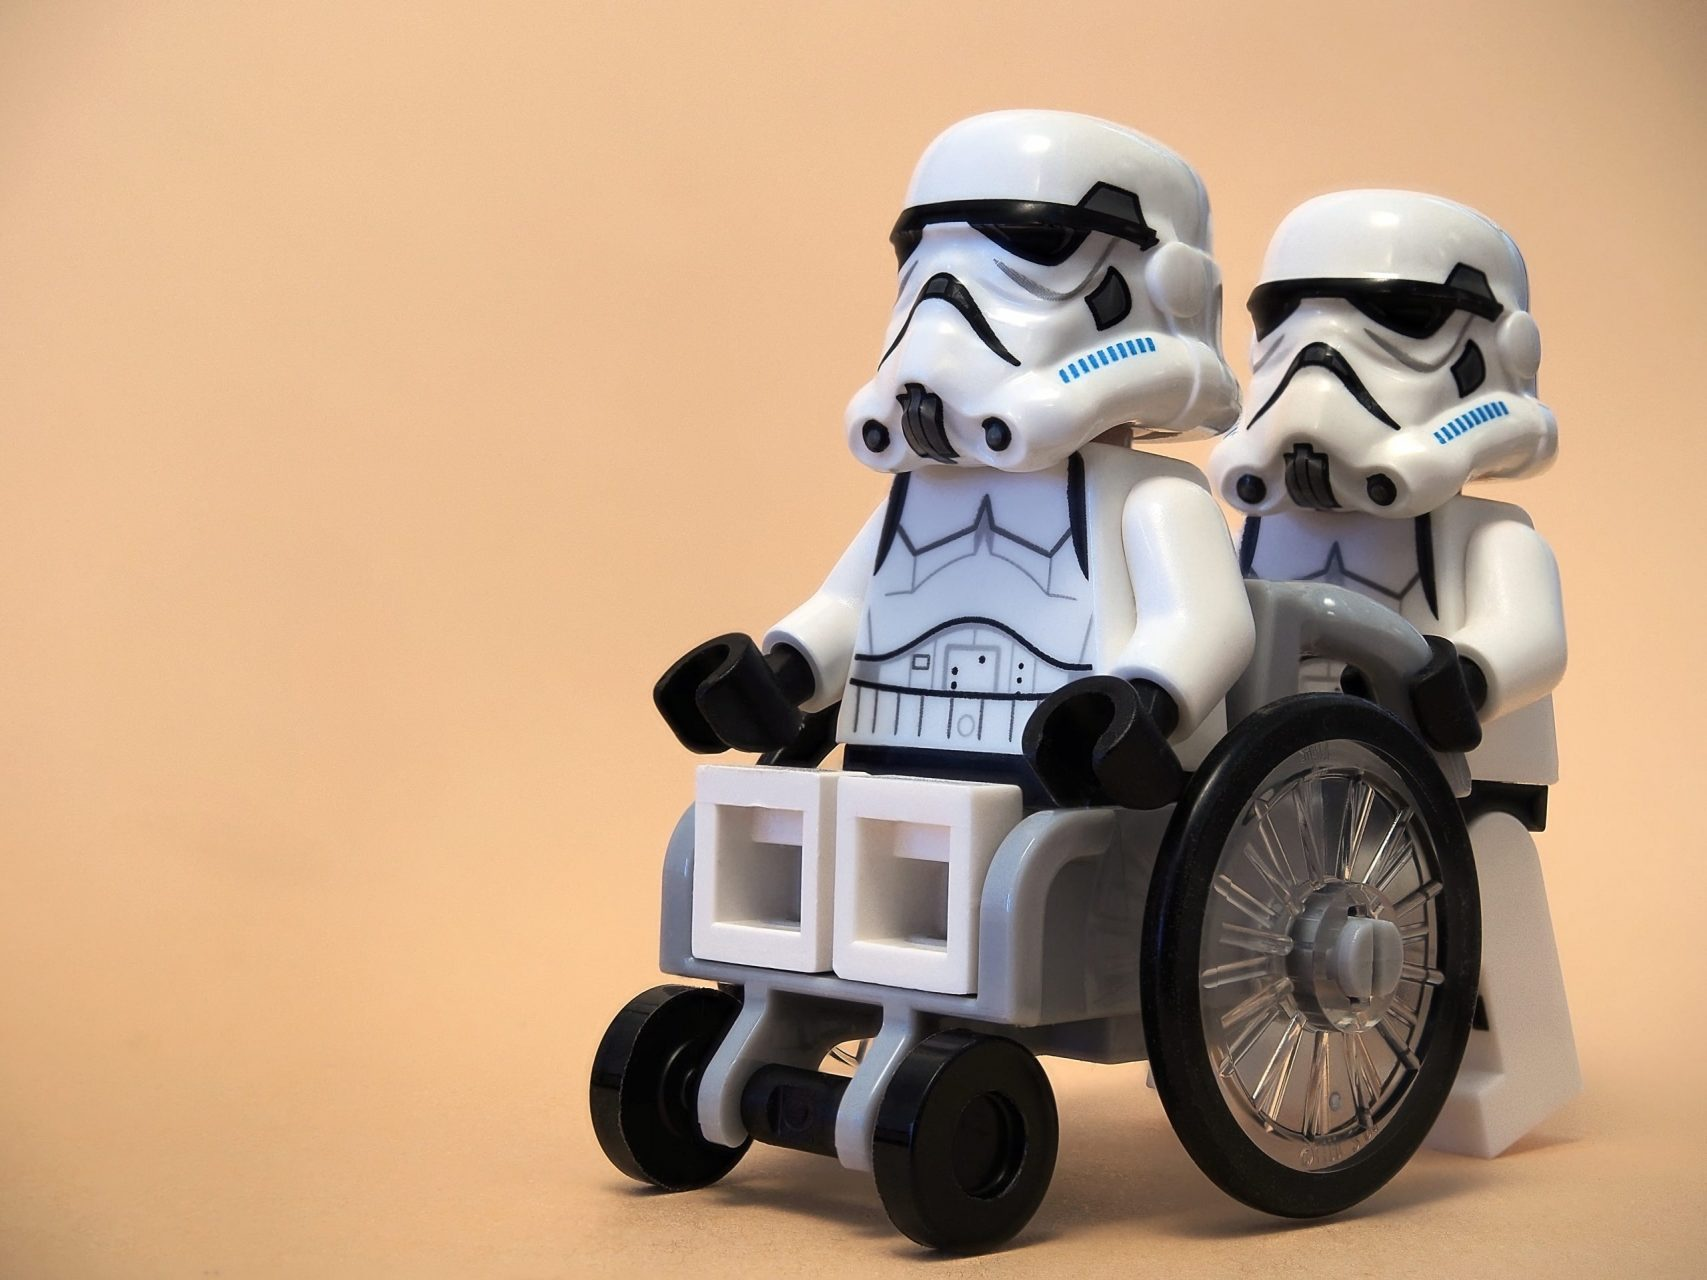 stormtrooper wheelchair: what to do if a toy or other defective product causes injuries